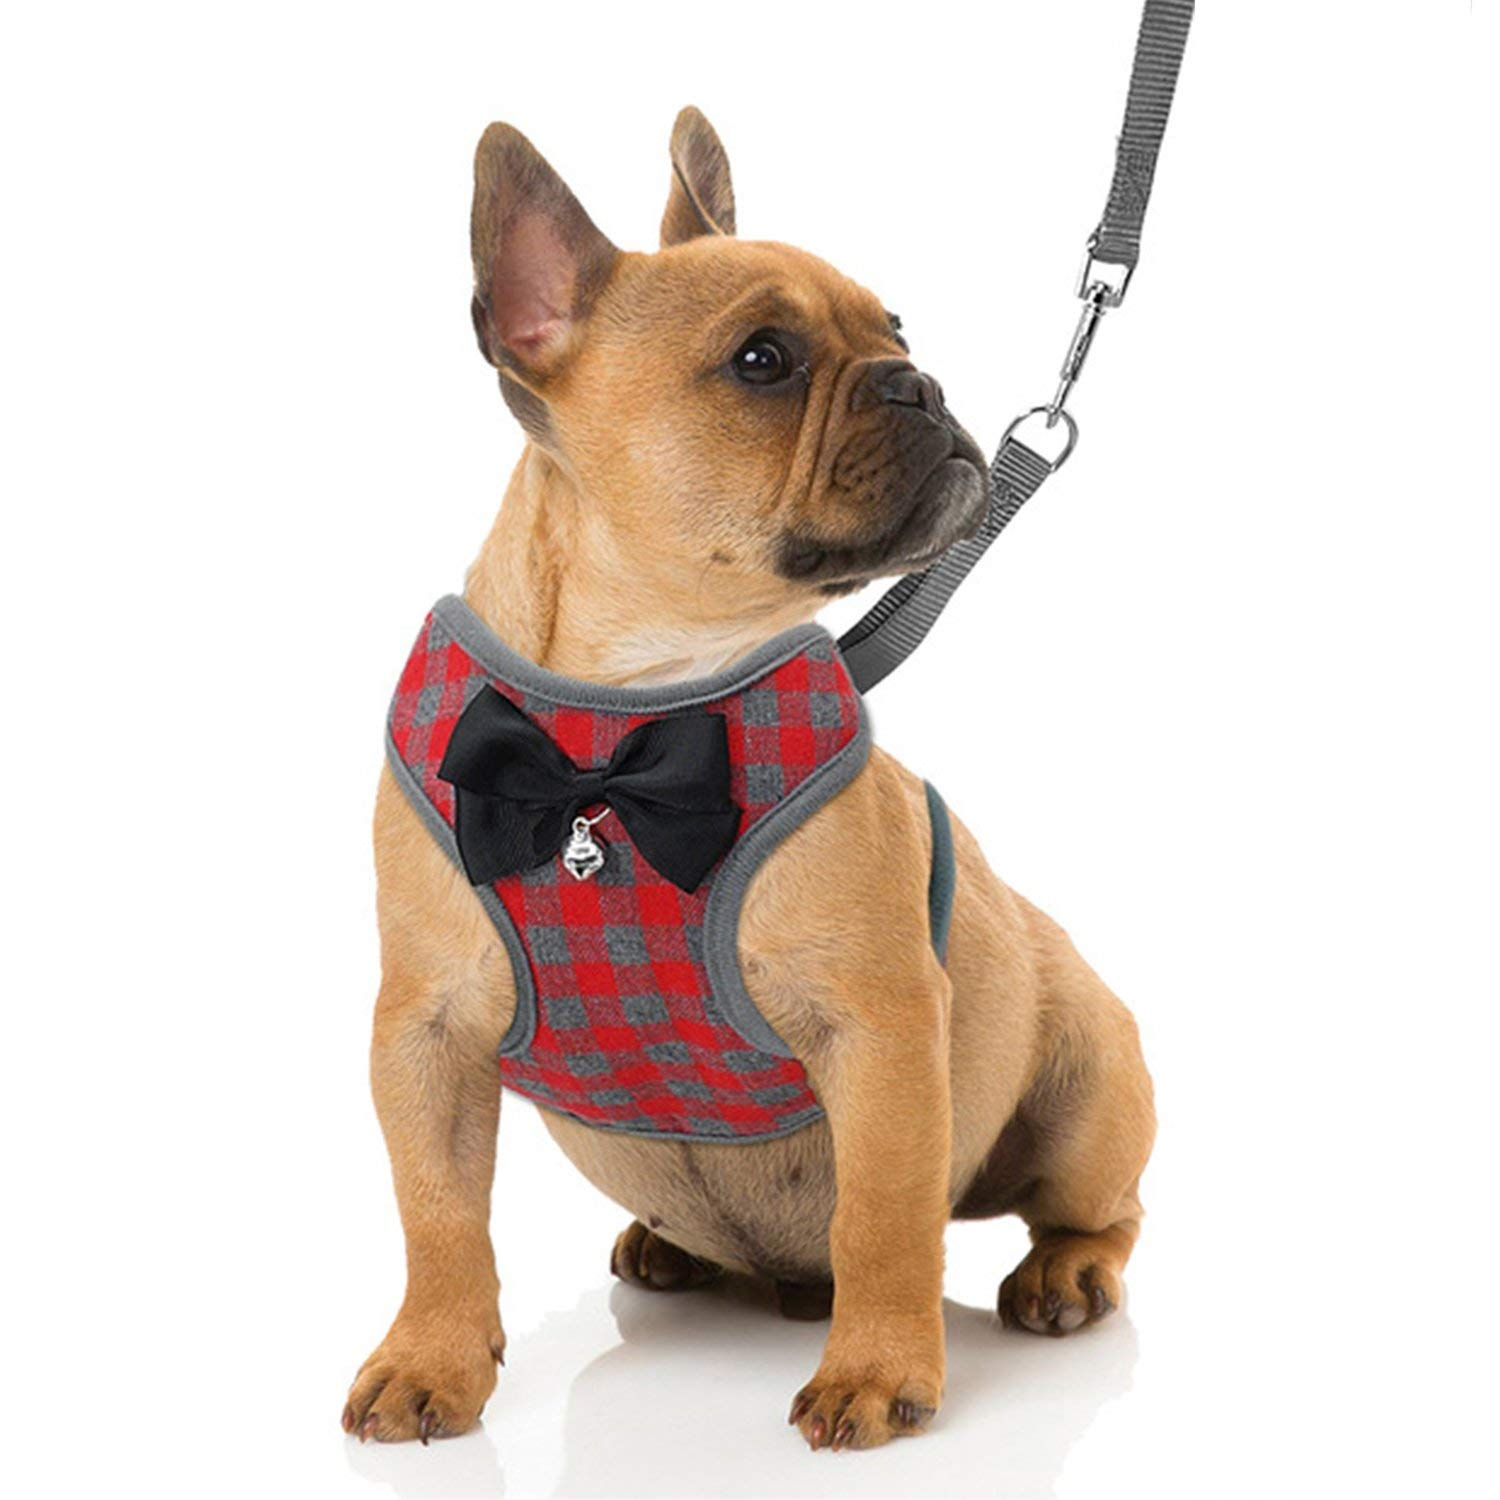 RYPET Small Dog Harness Leash